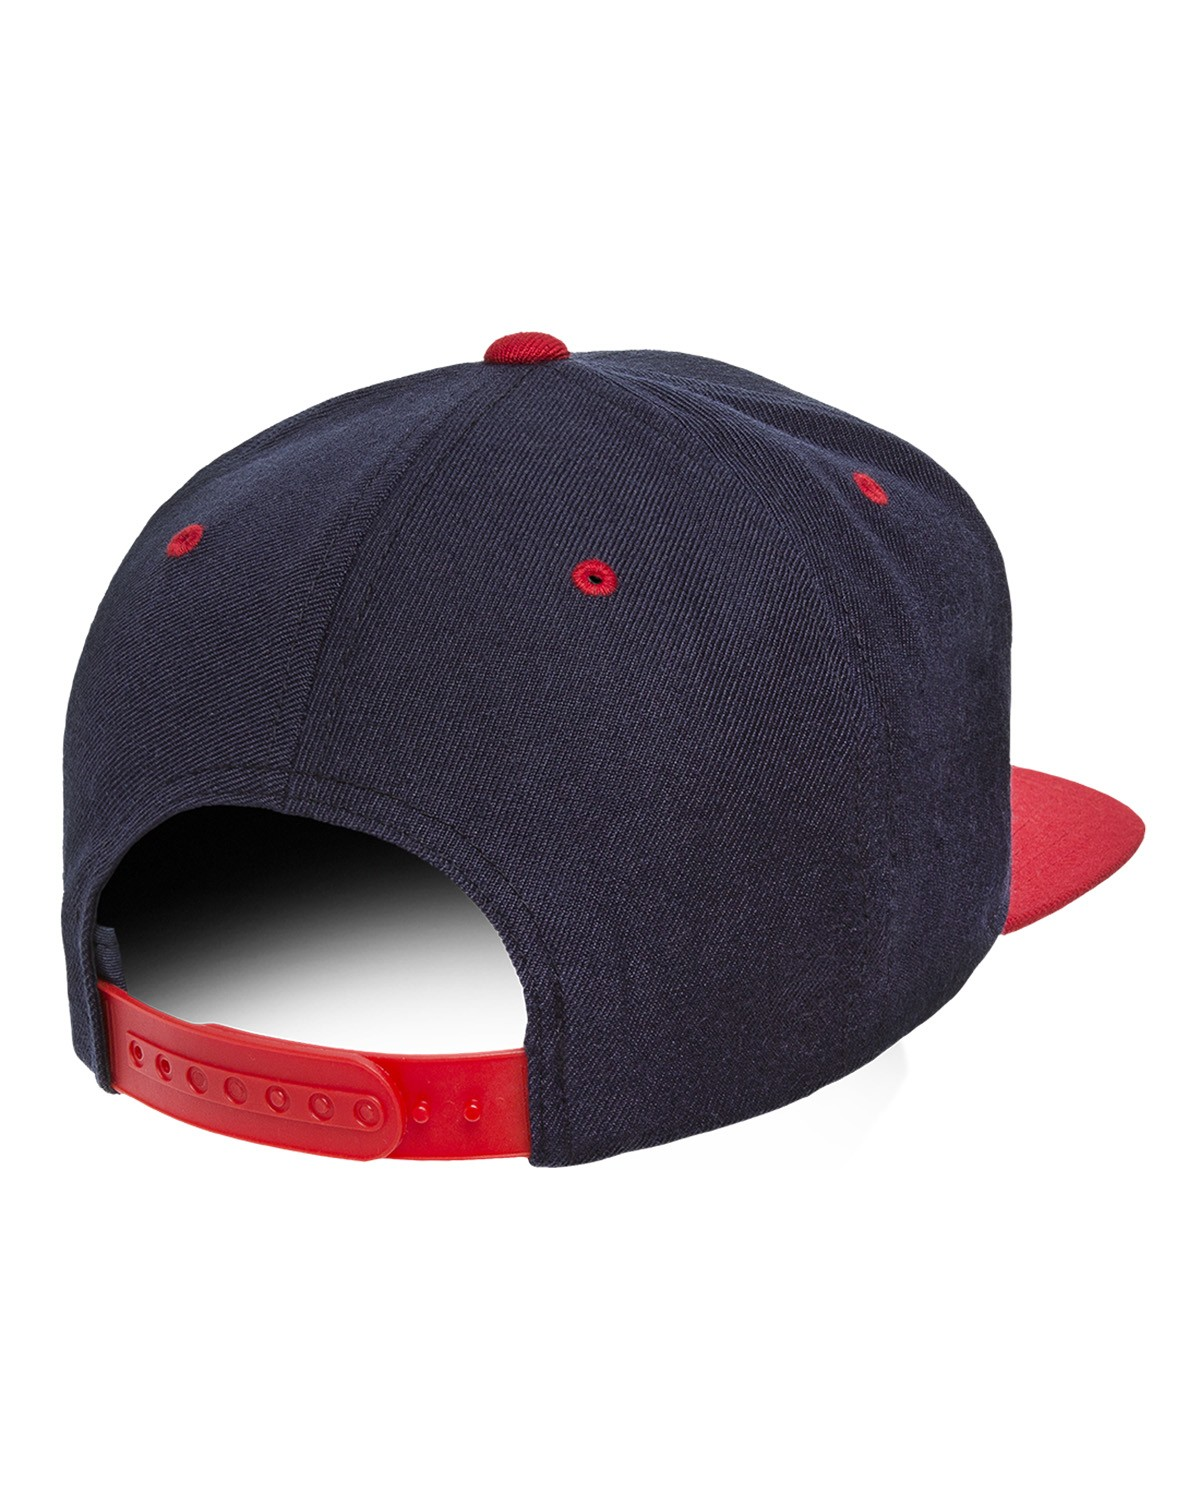 6089 Yupoong NAVY/RED